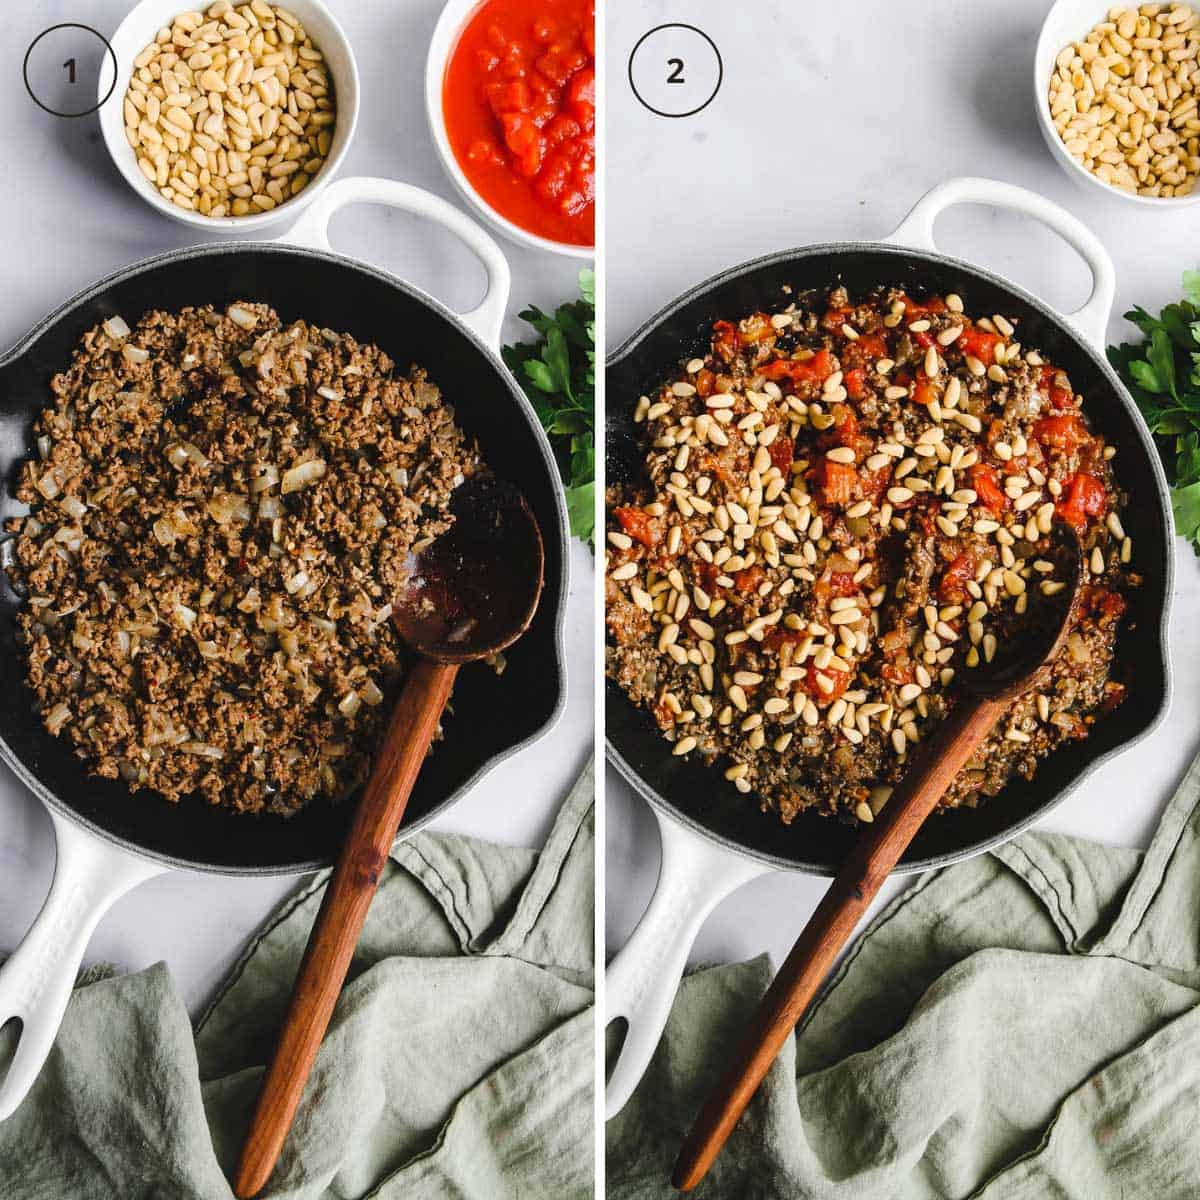 A skillet with ground lamb and a skillet with added tomatoes, spices, and pine nuts.